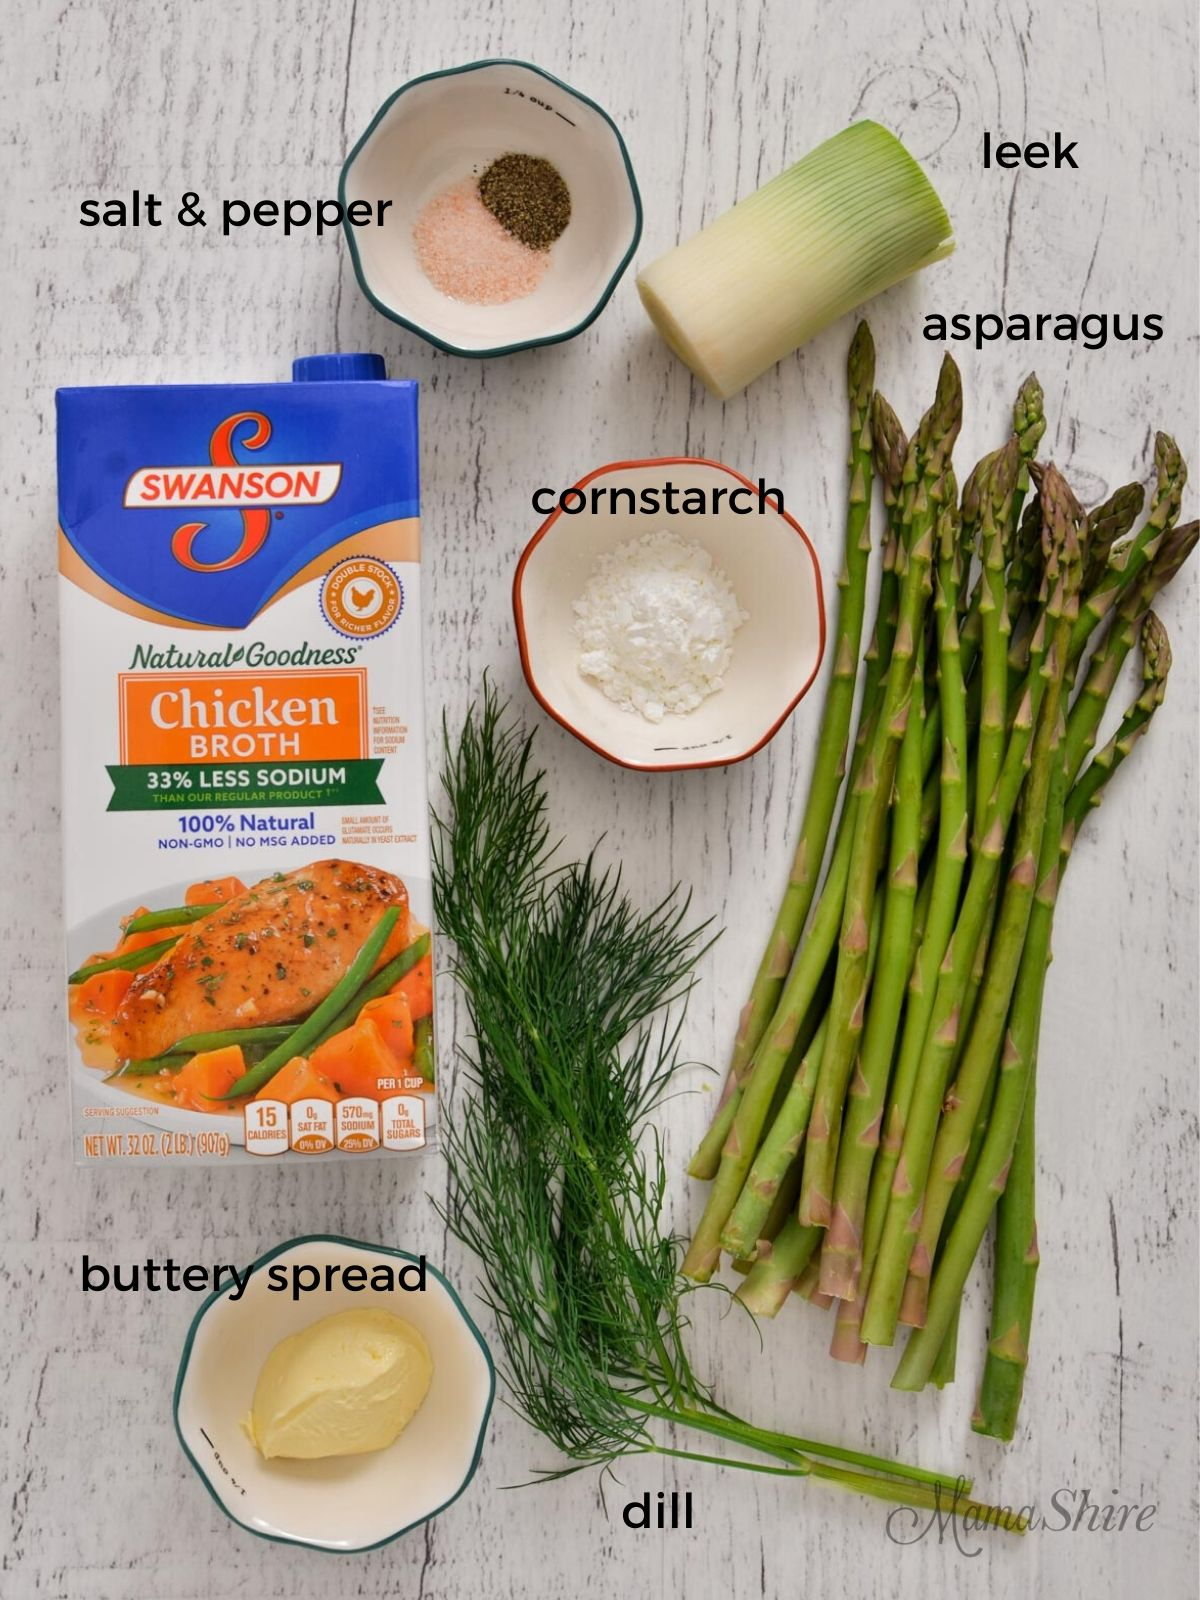 Ingredients for Asparagus Leek Soup include asparagus, chicken broth, one leek, buttery spread, cornstarch, salt, pepper, and dill.